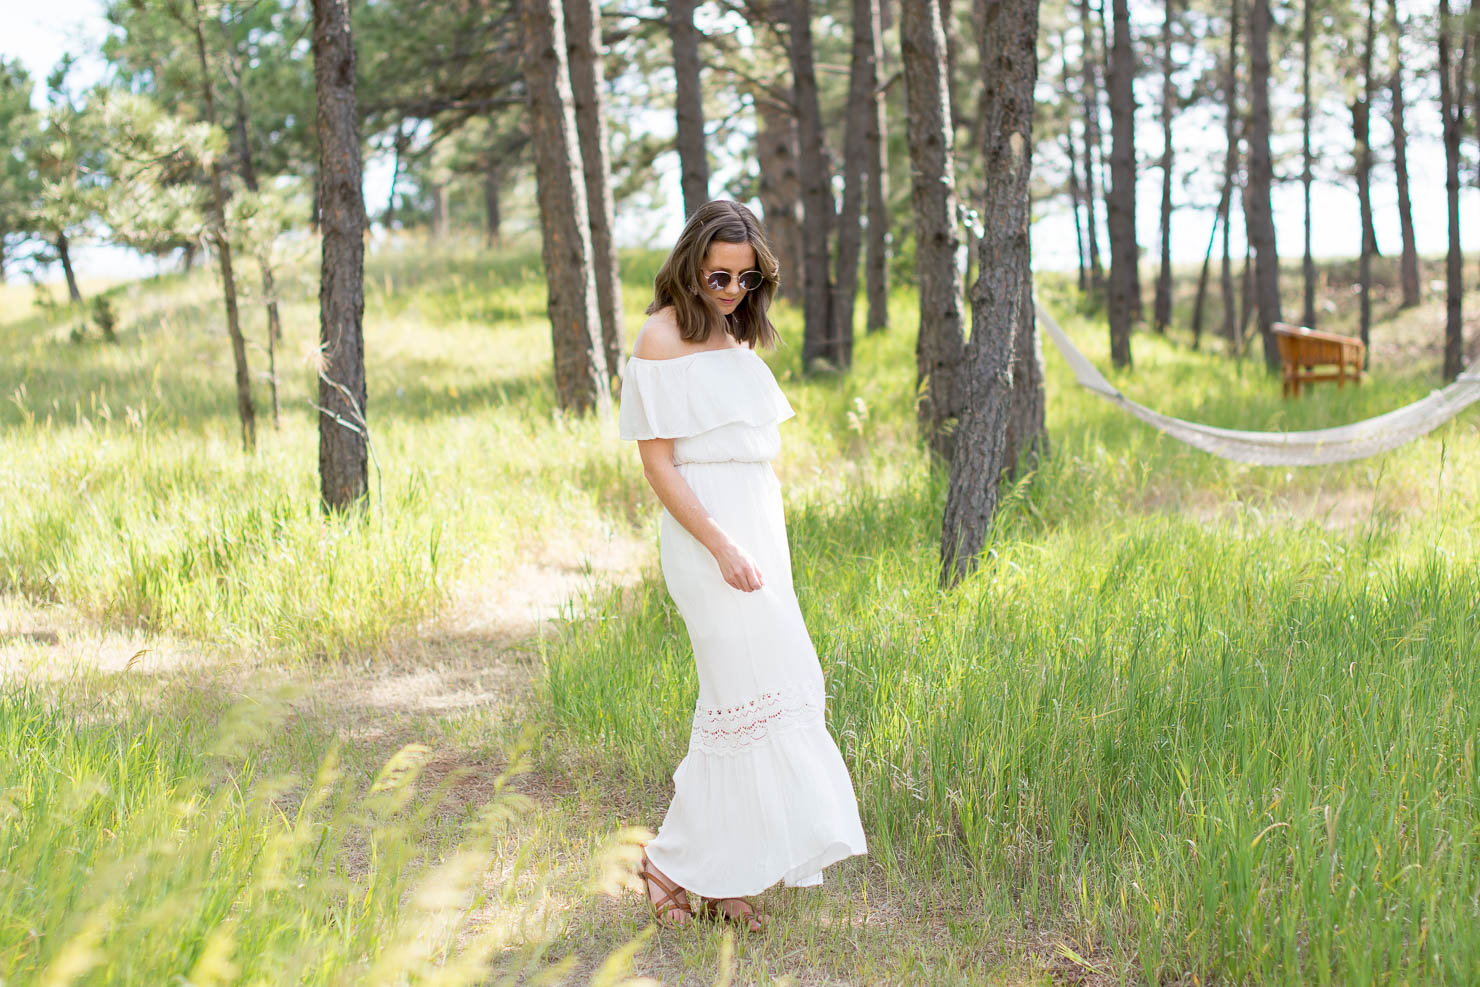 endless summer, 10 things you don't know about me, off she shoulder white maxi dress, black hills